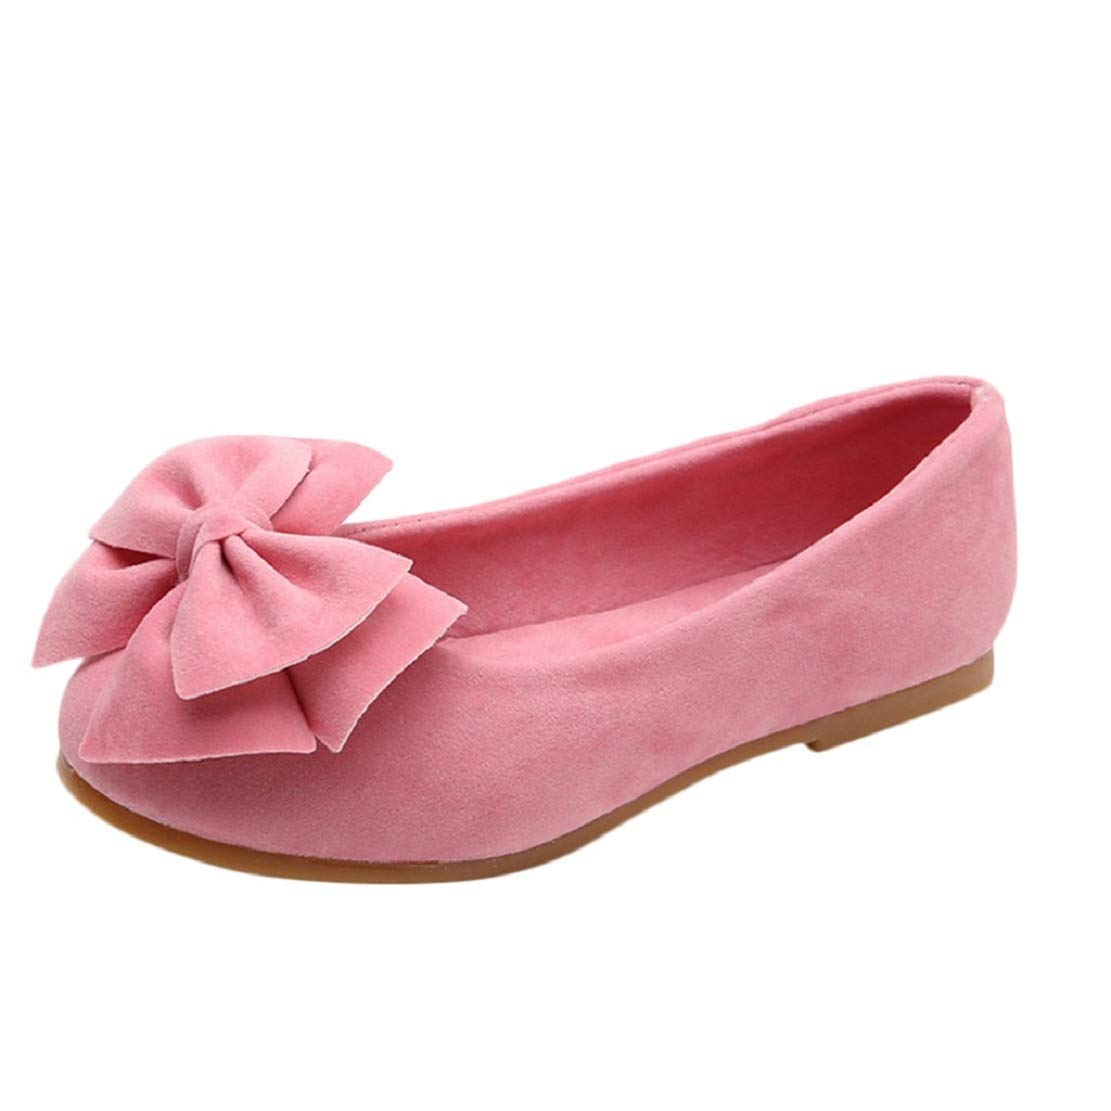 Toddler Kids Children Teen Girls Ballet Shoes Slip on Bowknot Shoes Dress Shoes Girls Flats (12M-12Y) by Lowprofile